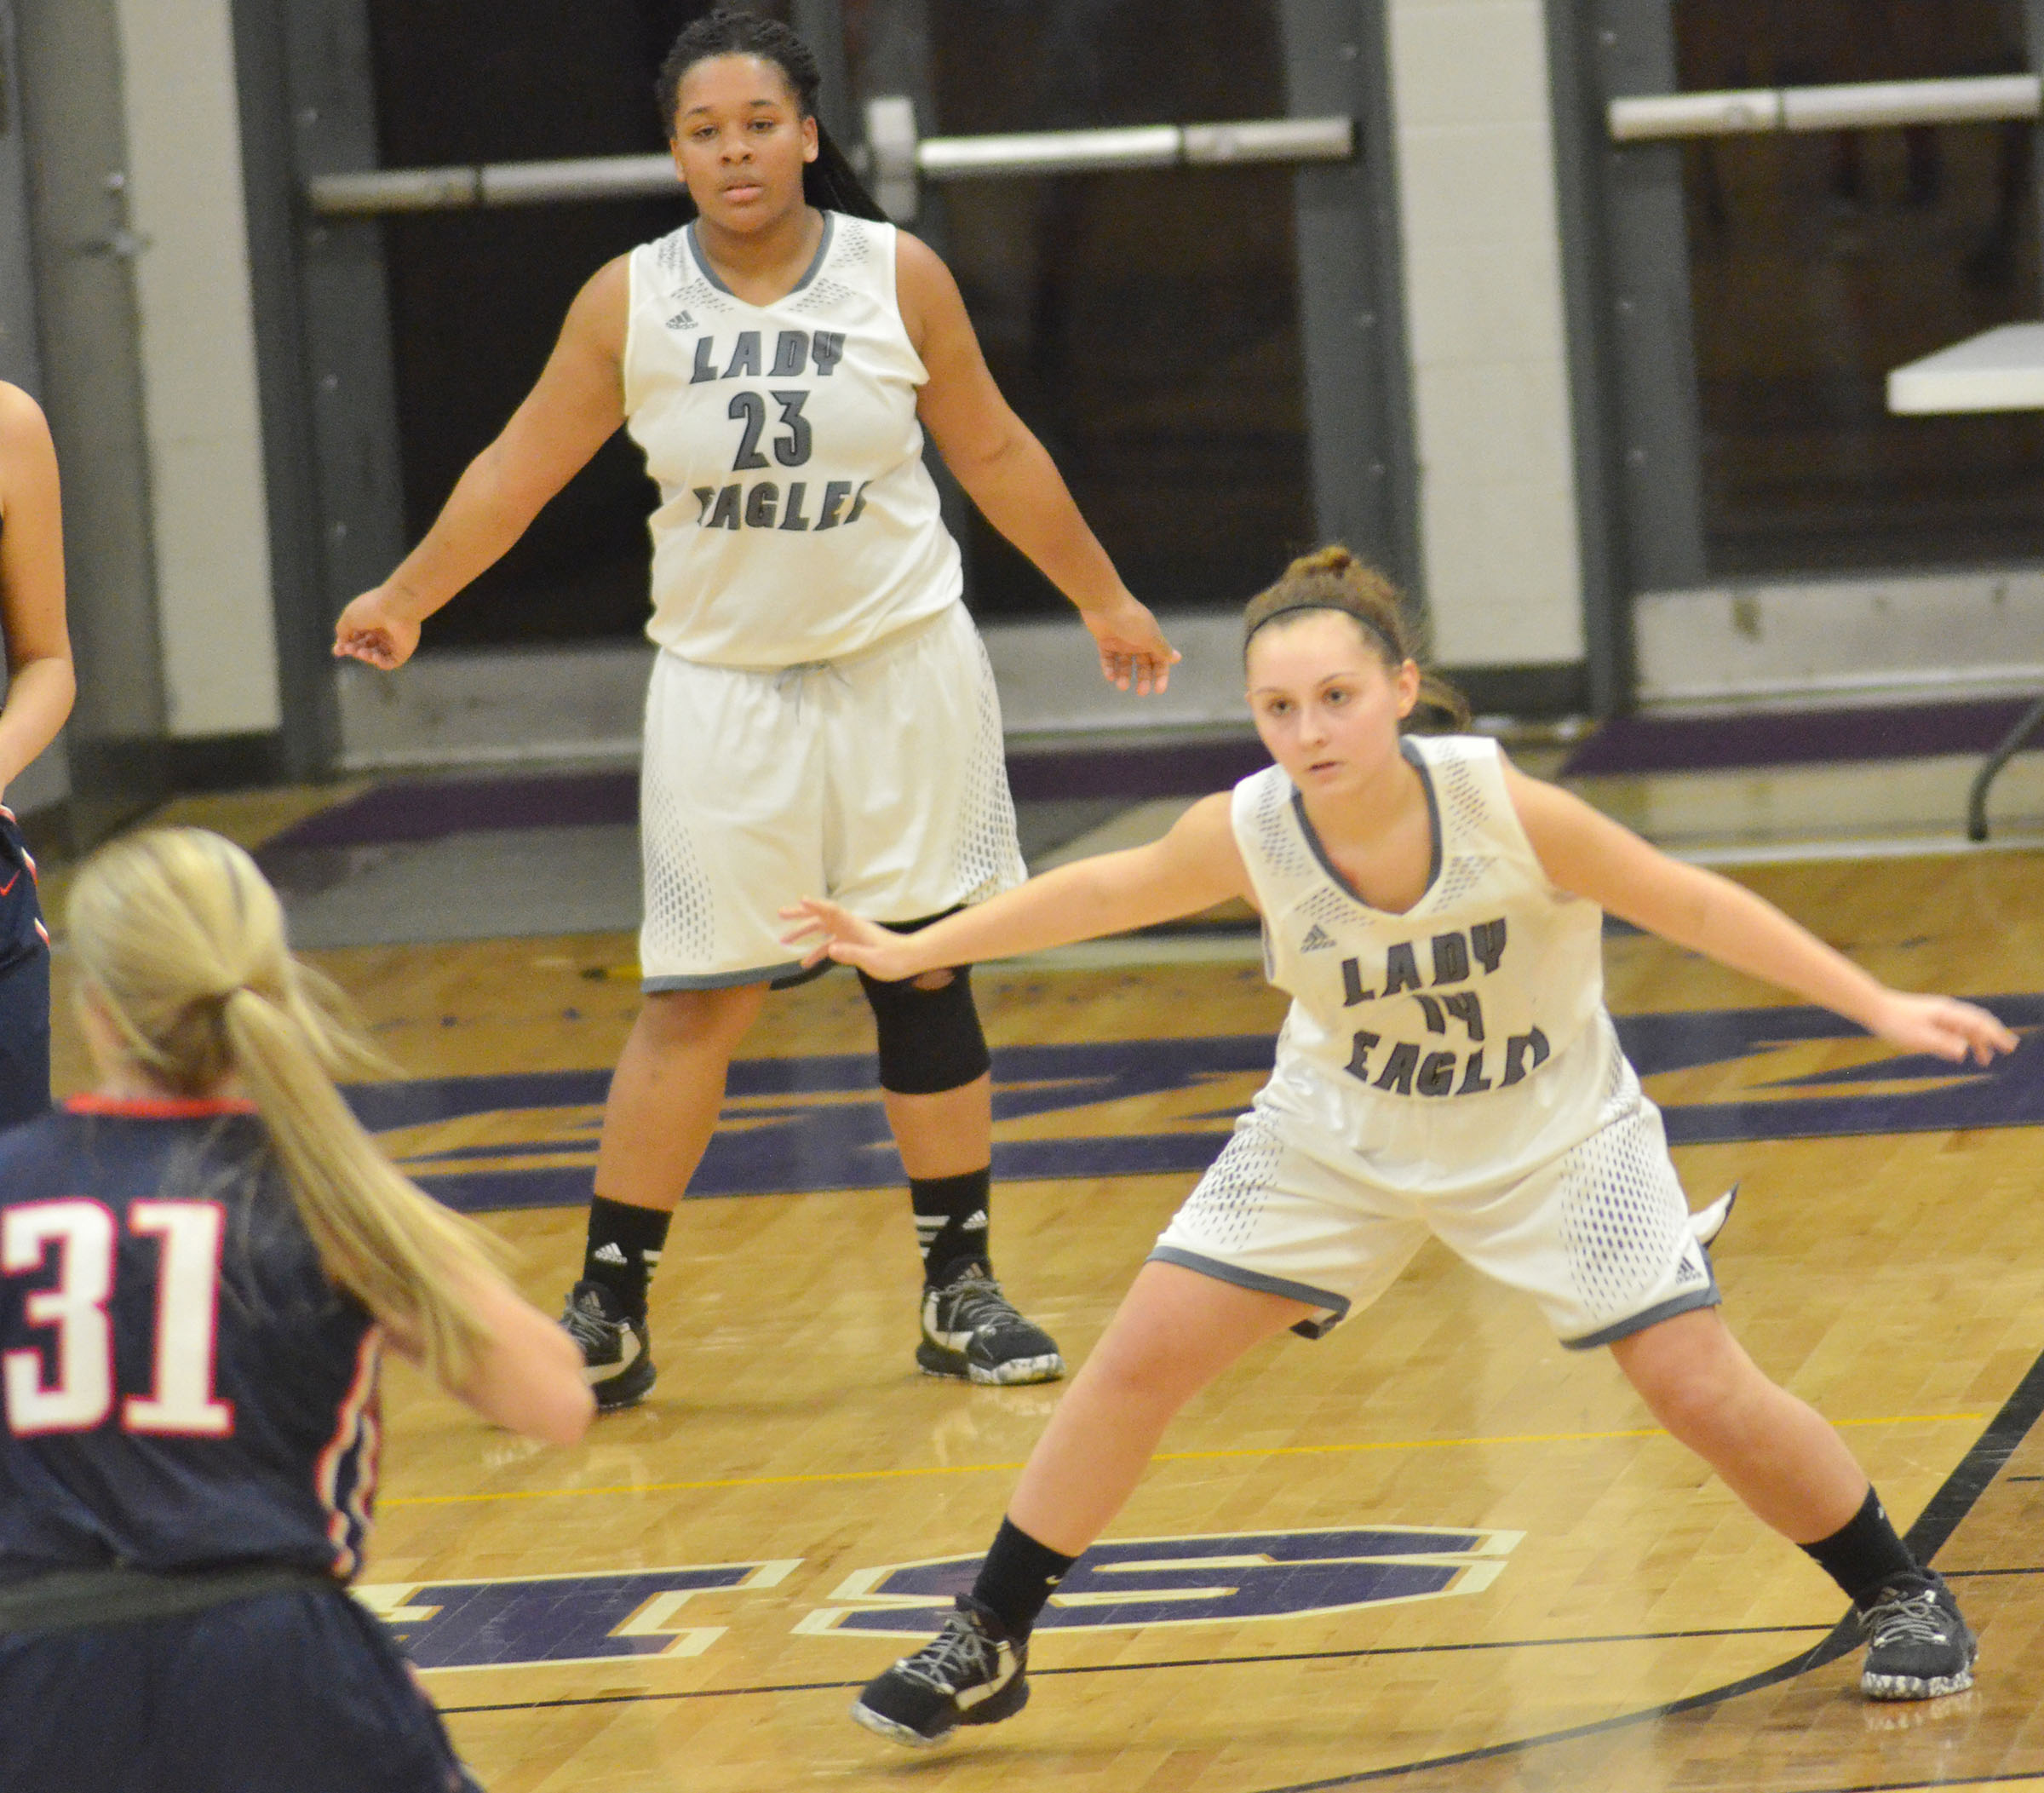 CHS sophomore Reagan Knight, in front, and junior Kayla Young play defense.